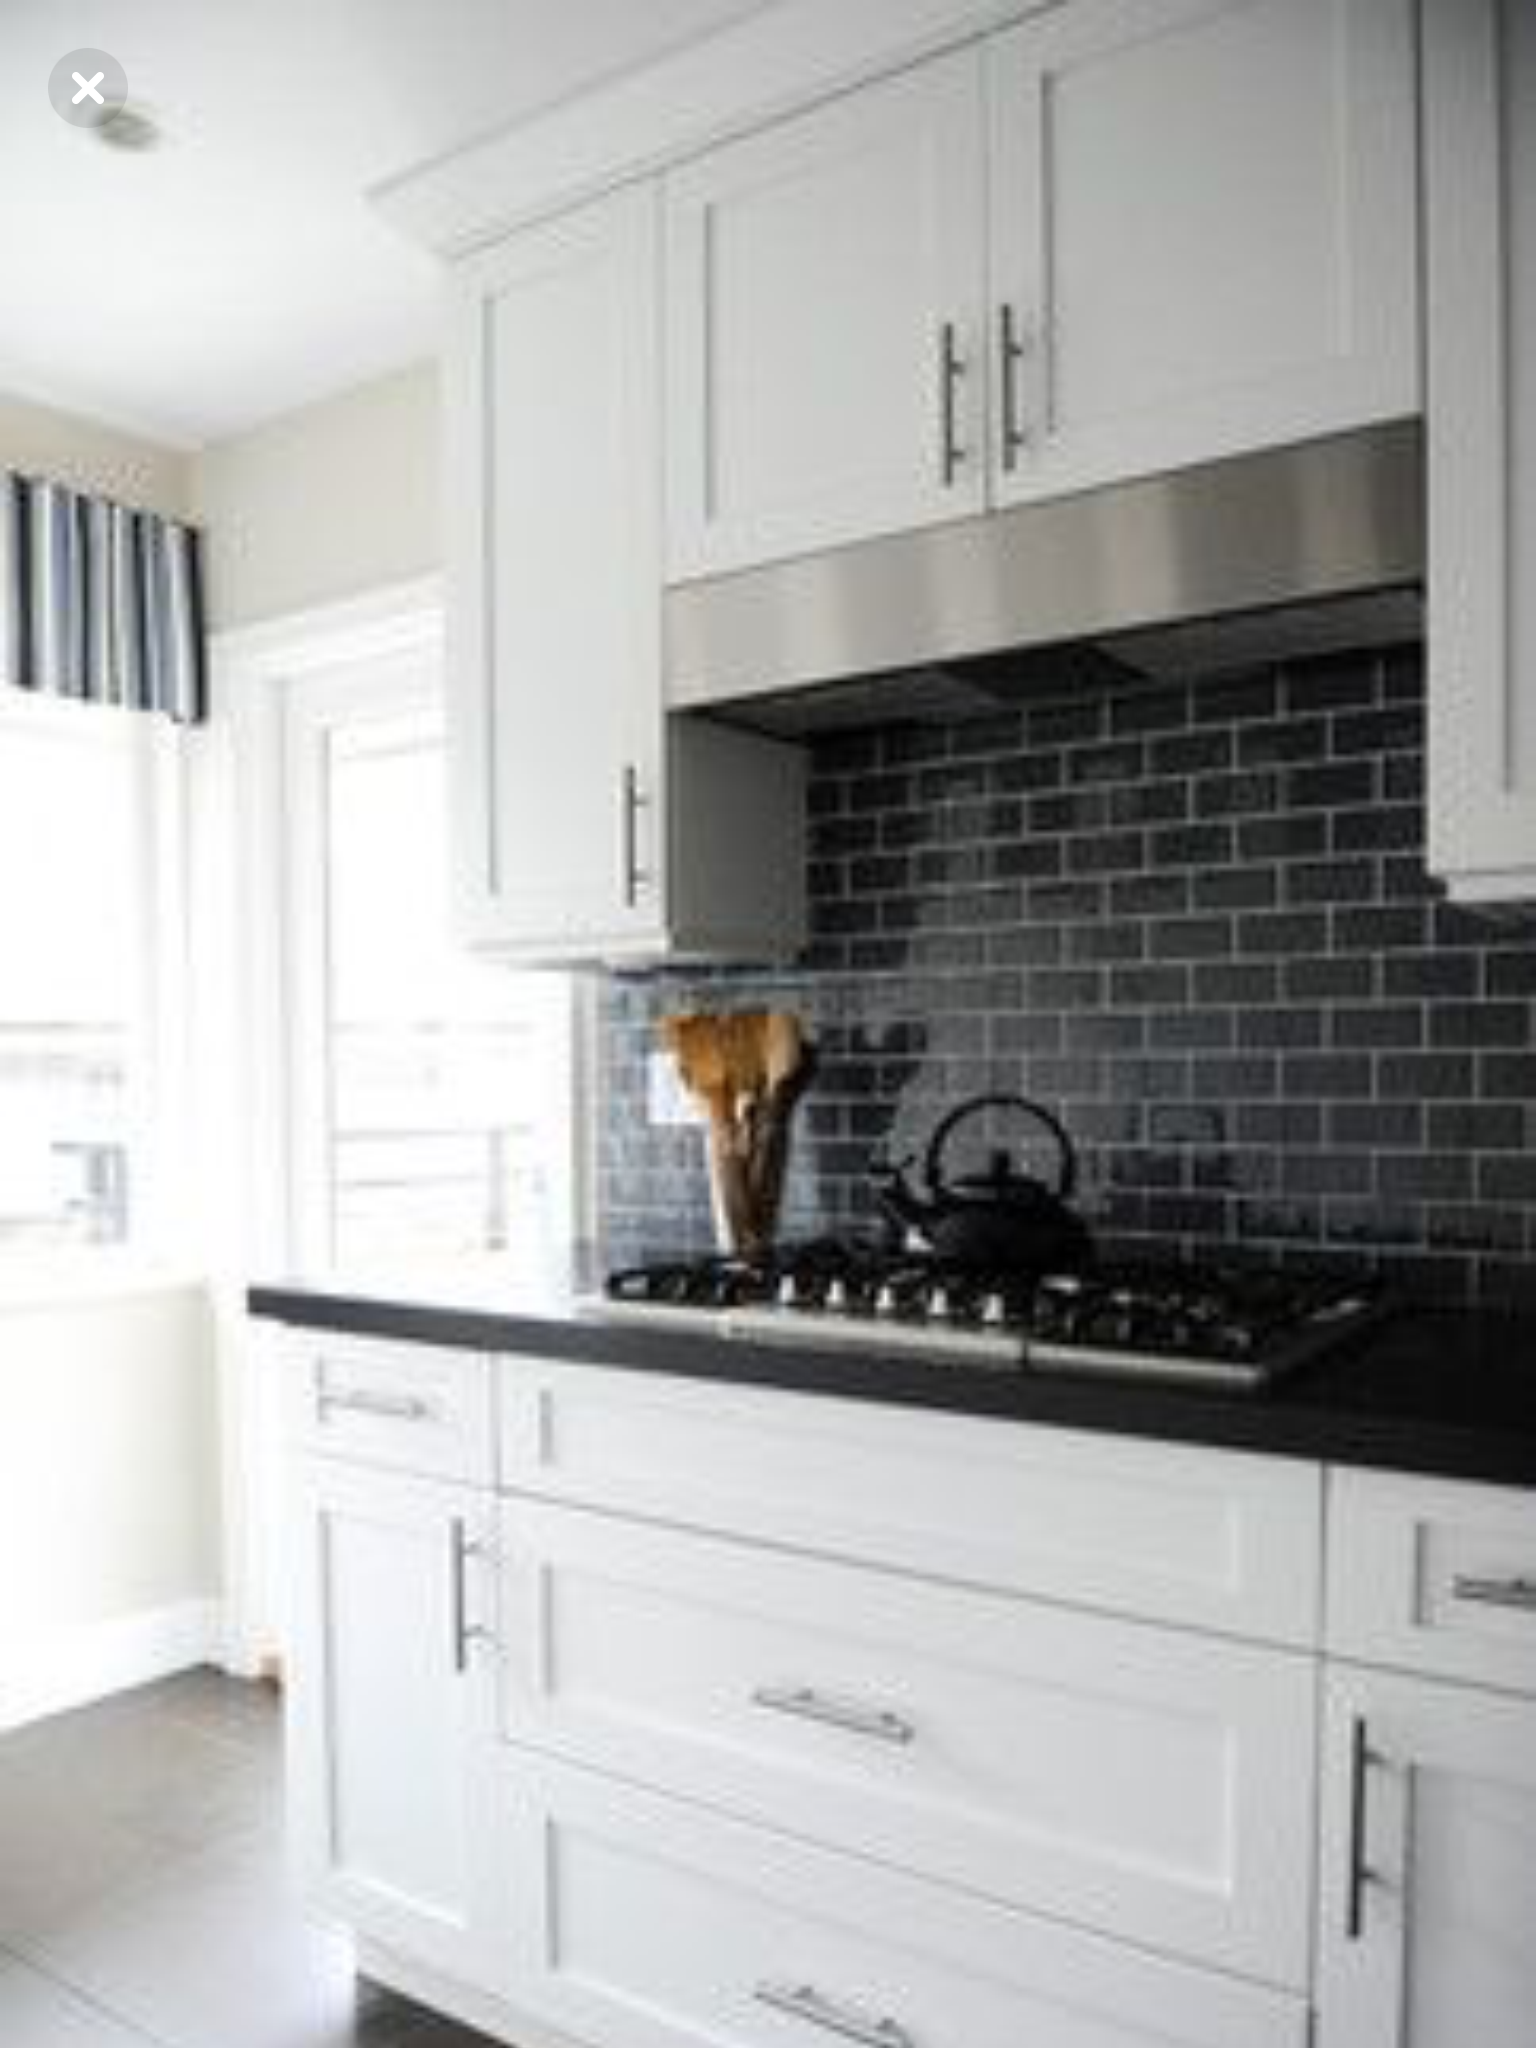 Kitchen Design By Douglas Verwolf On Range Hoods Apartment